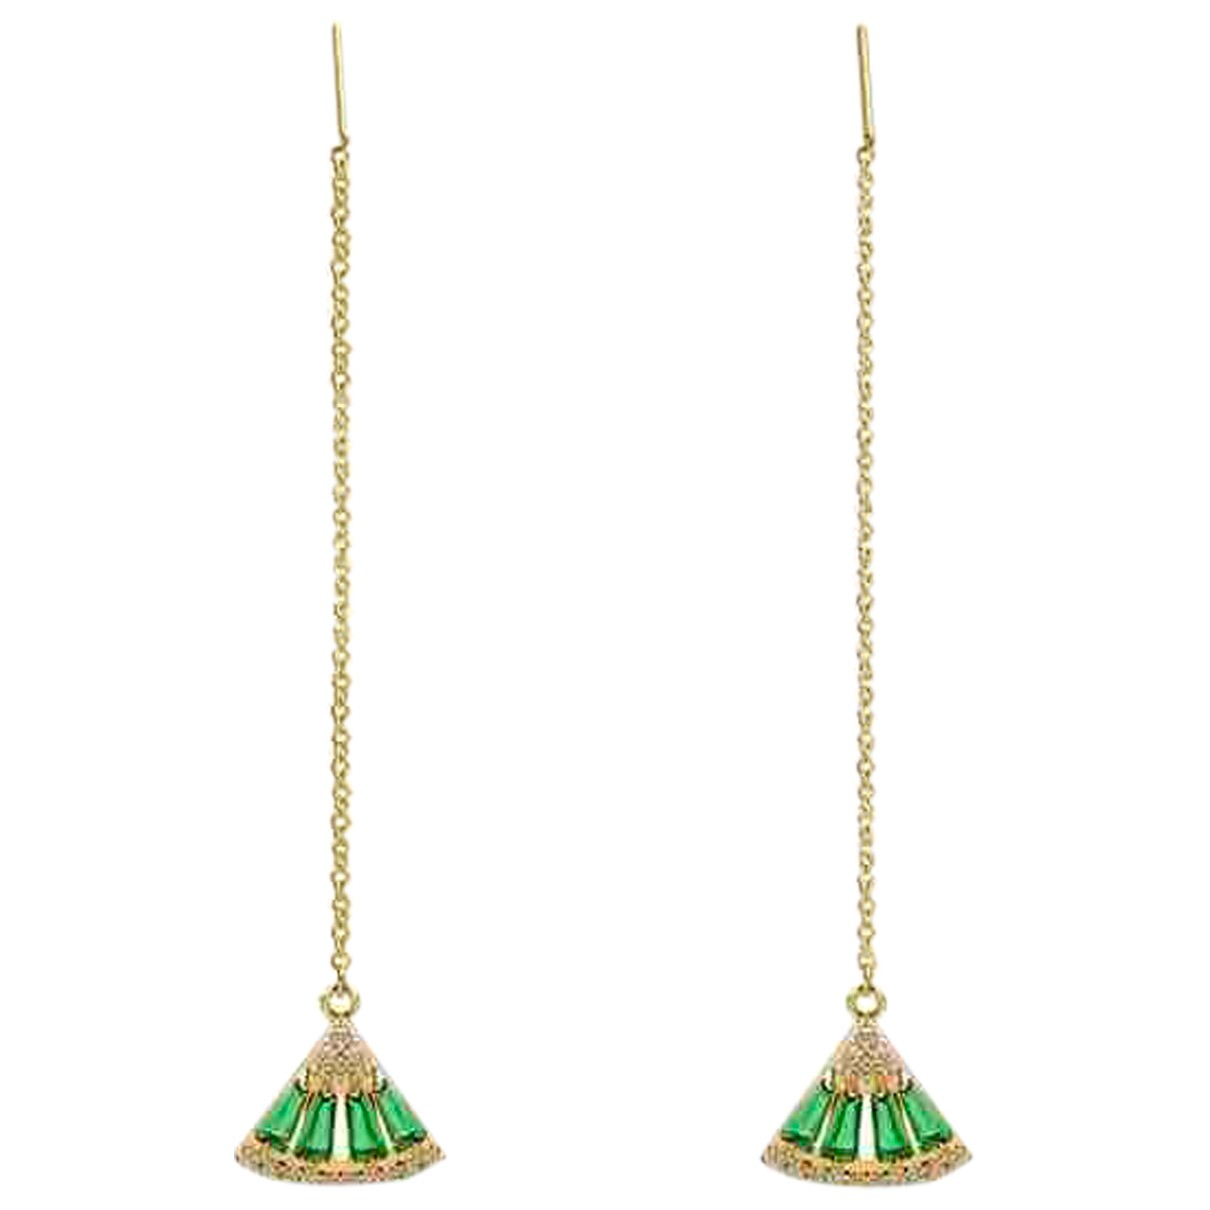 Non Signé / Unsigned Dormeuses Gold Metal Earrings for Women N